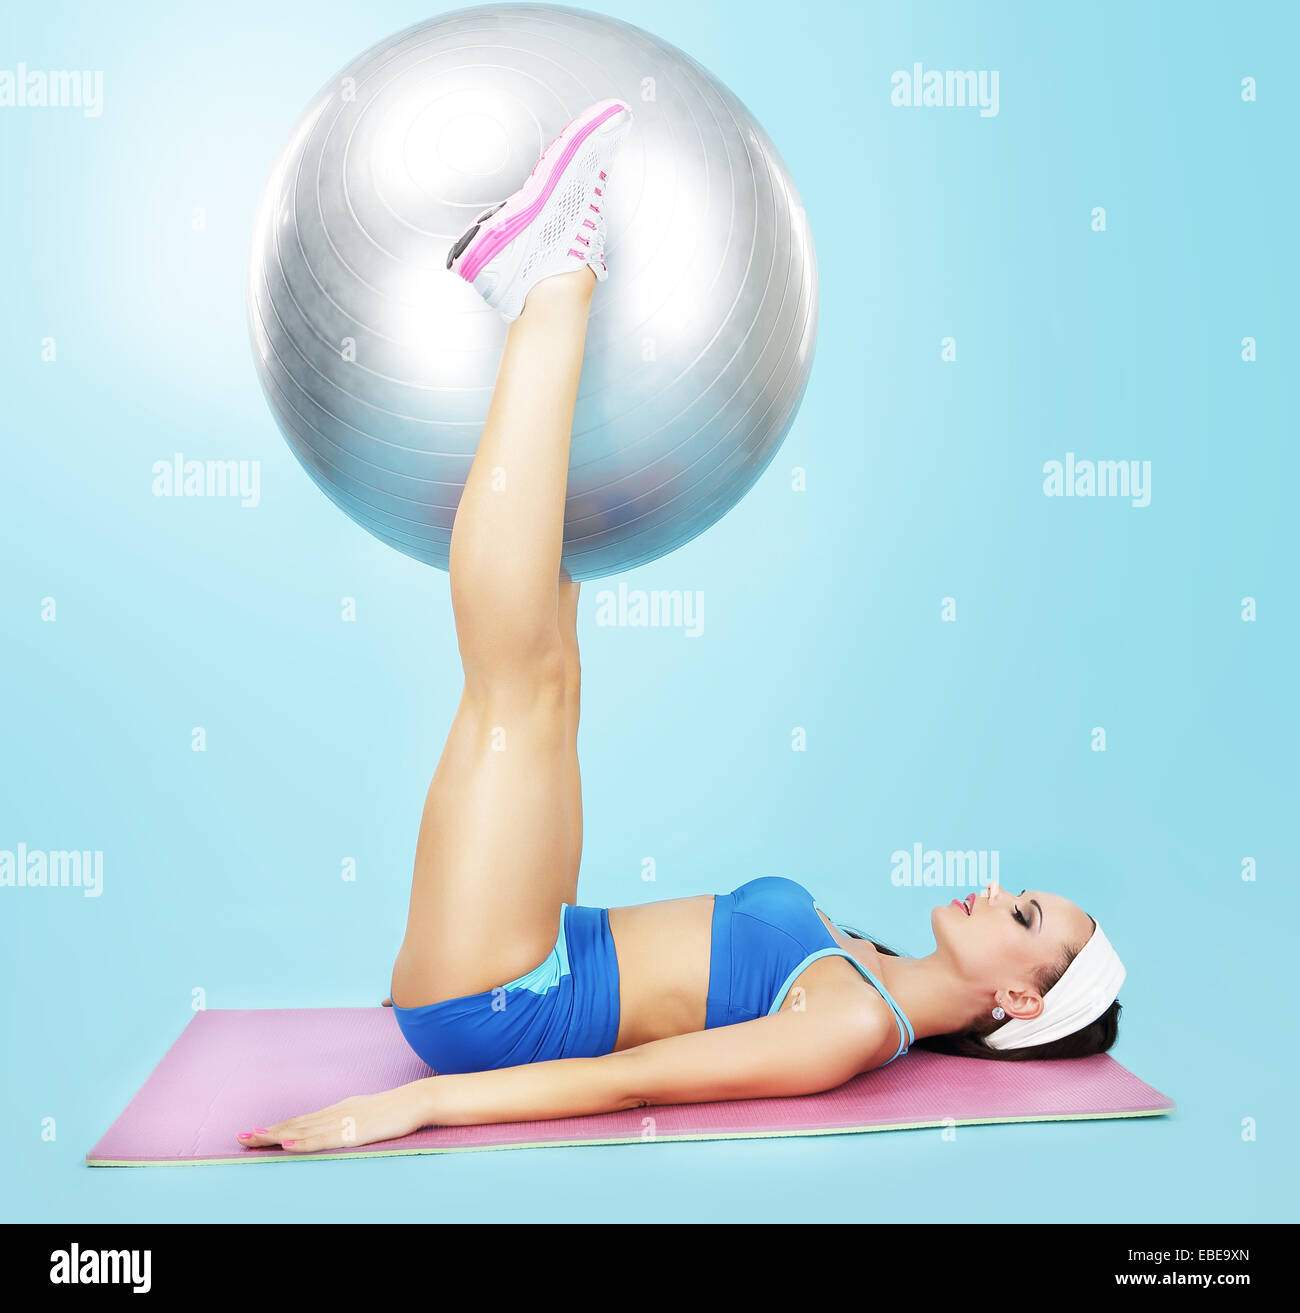 Une salle de sport. Le bien-être. Sporty Woman with Fitness Ball Photo Stock